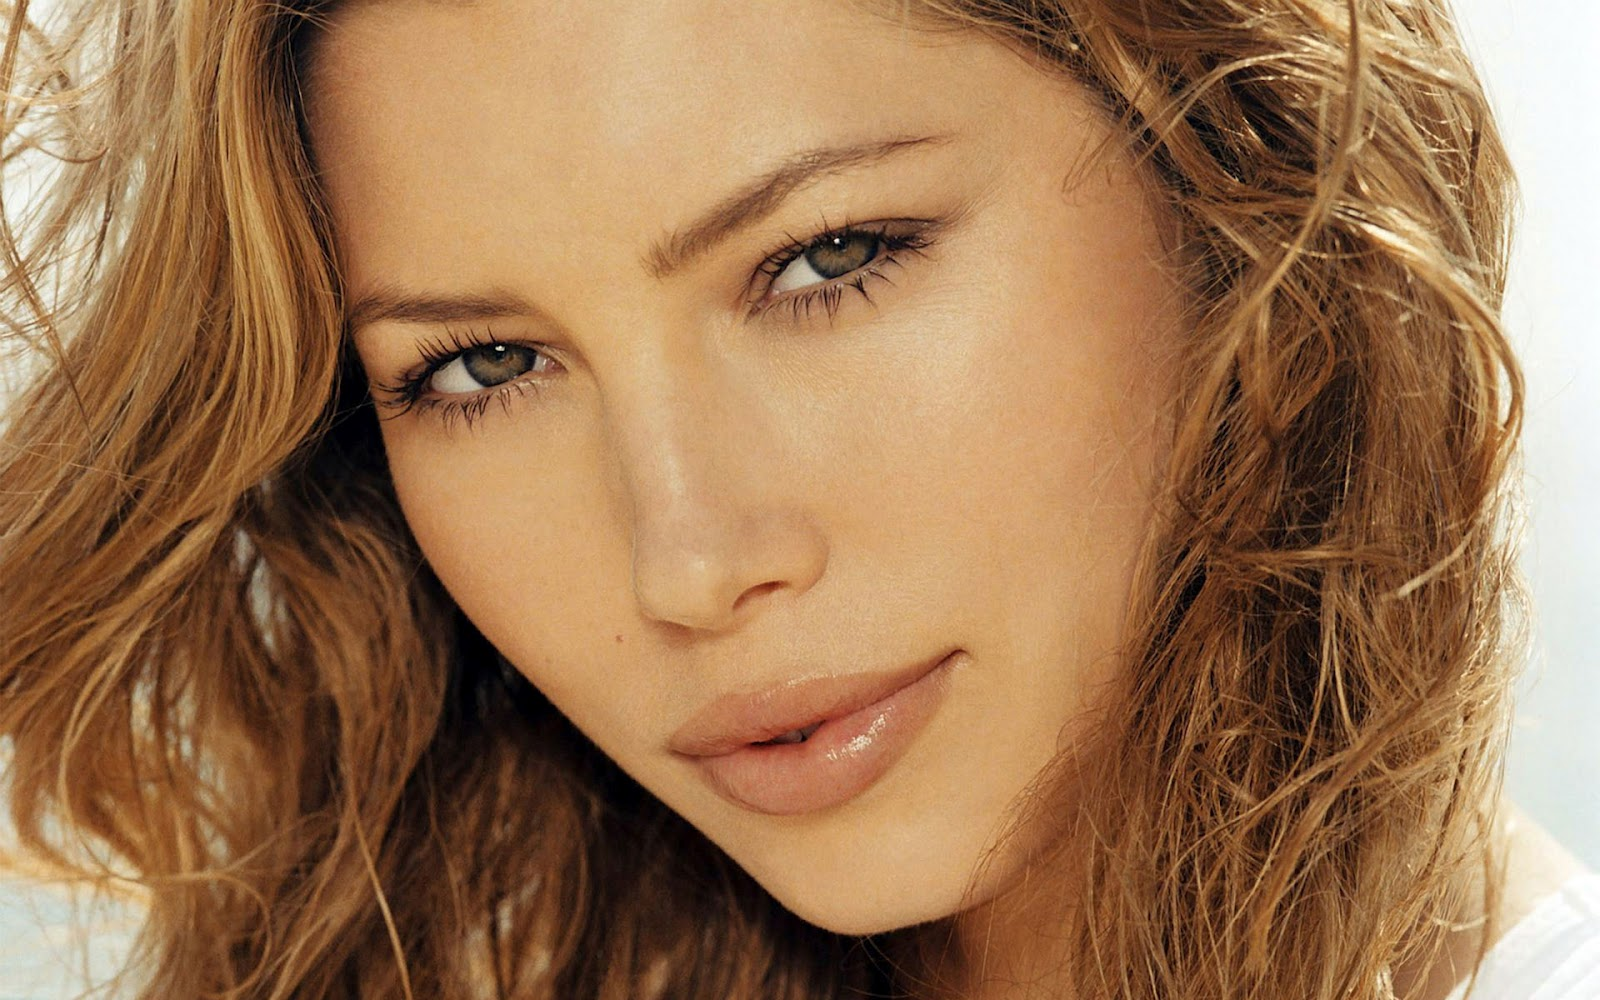 jessica biel background - photo #26